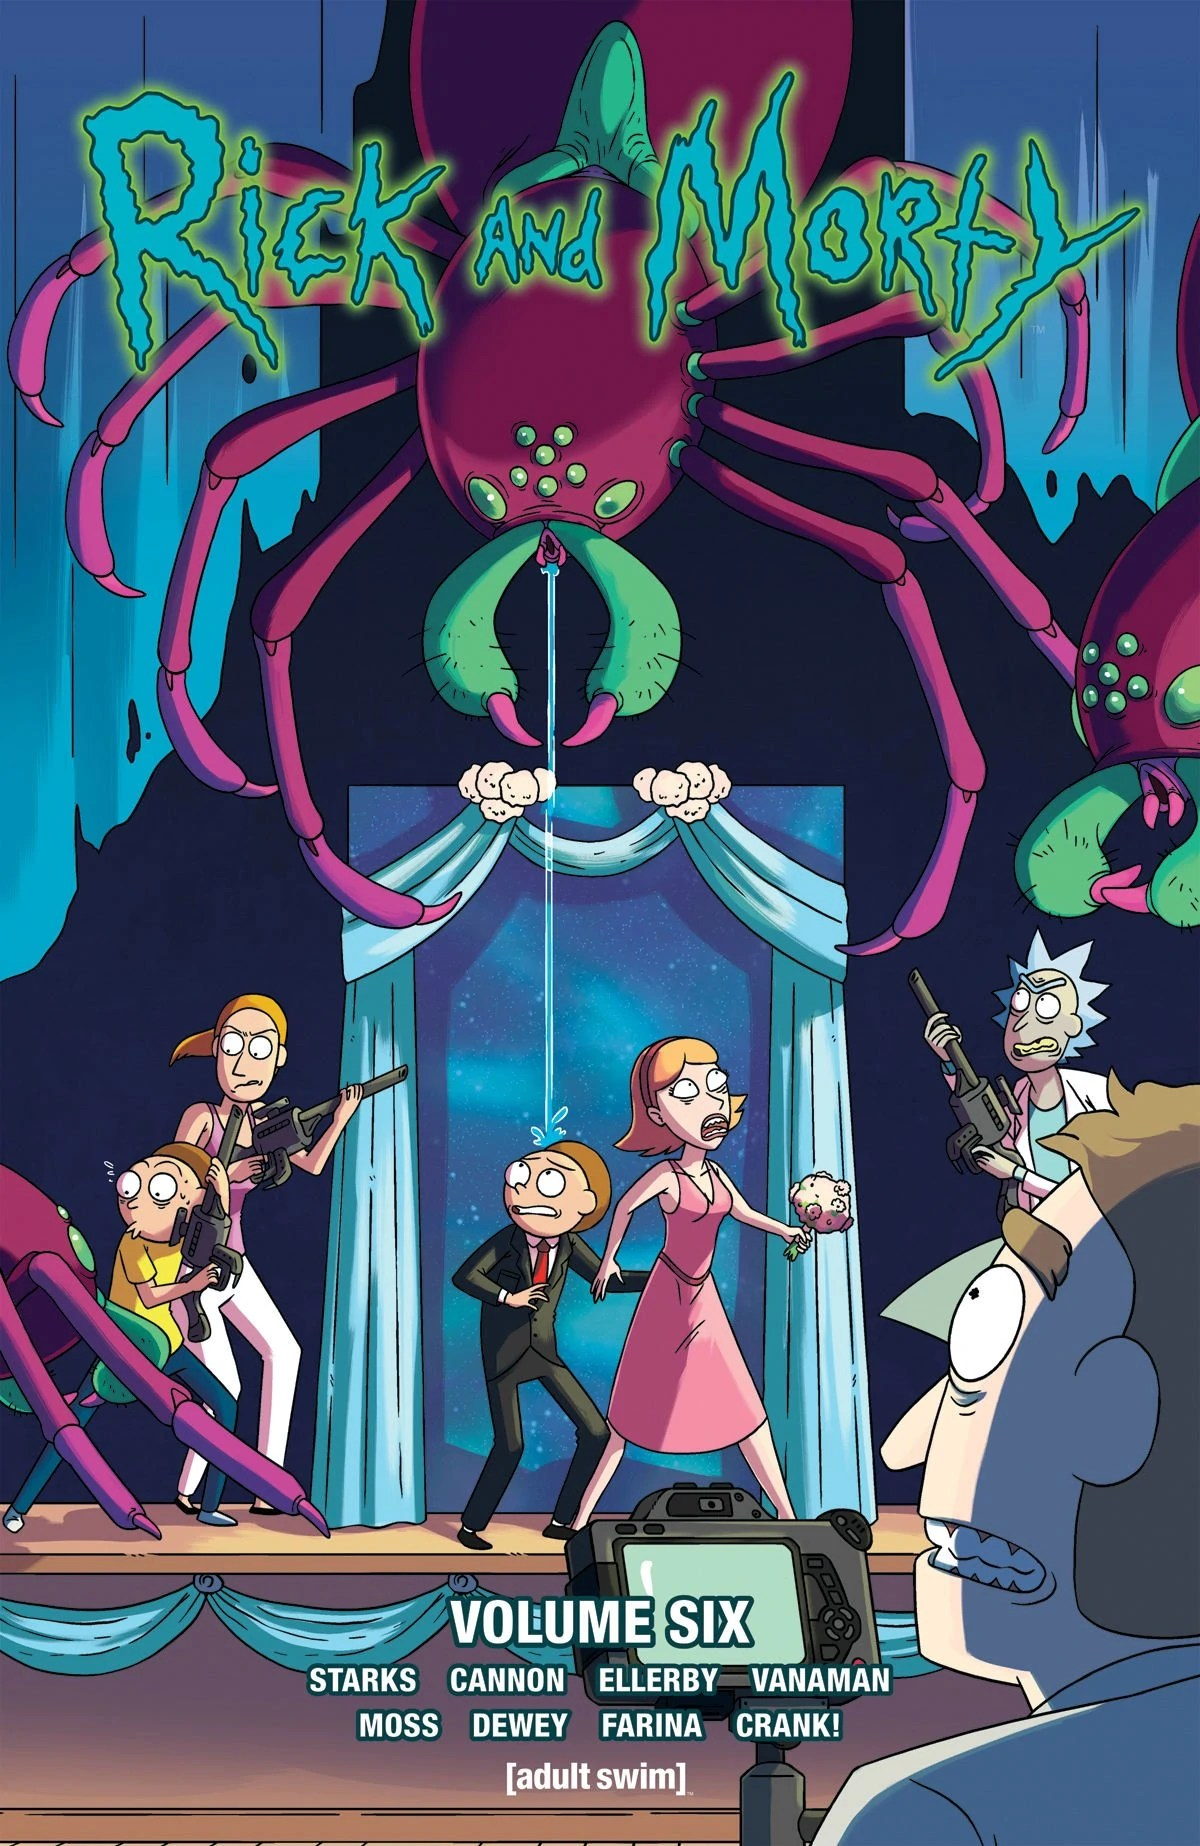 Rick and Morty Volume 6 | Rick and Morty Wiki | FANDOM powered by Wikia